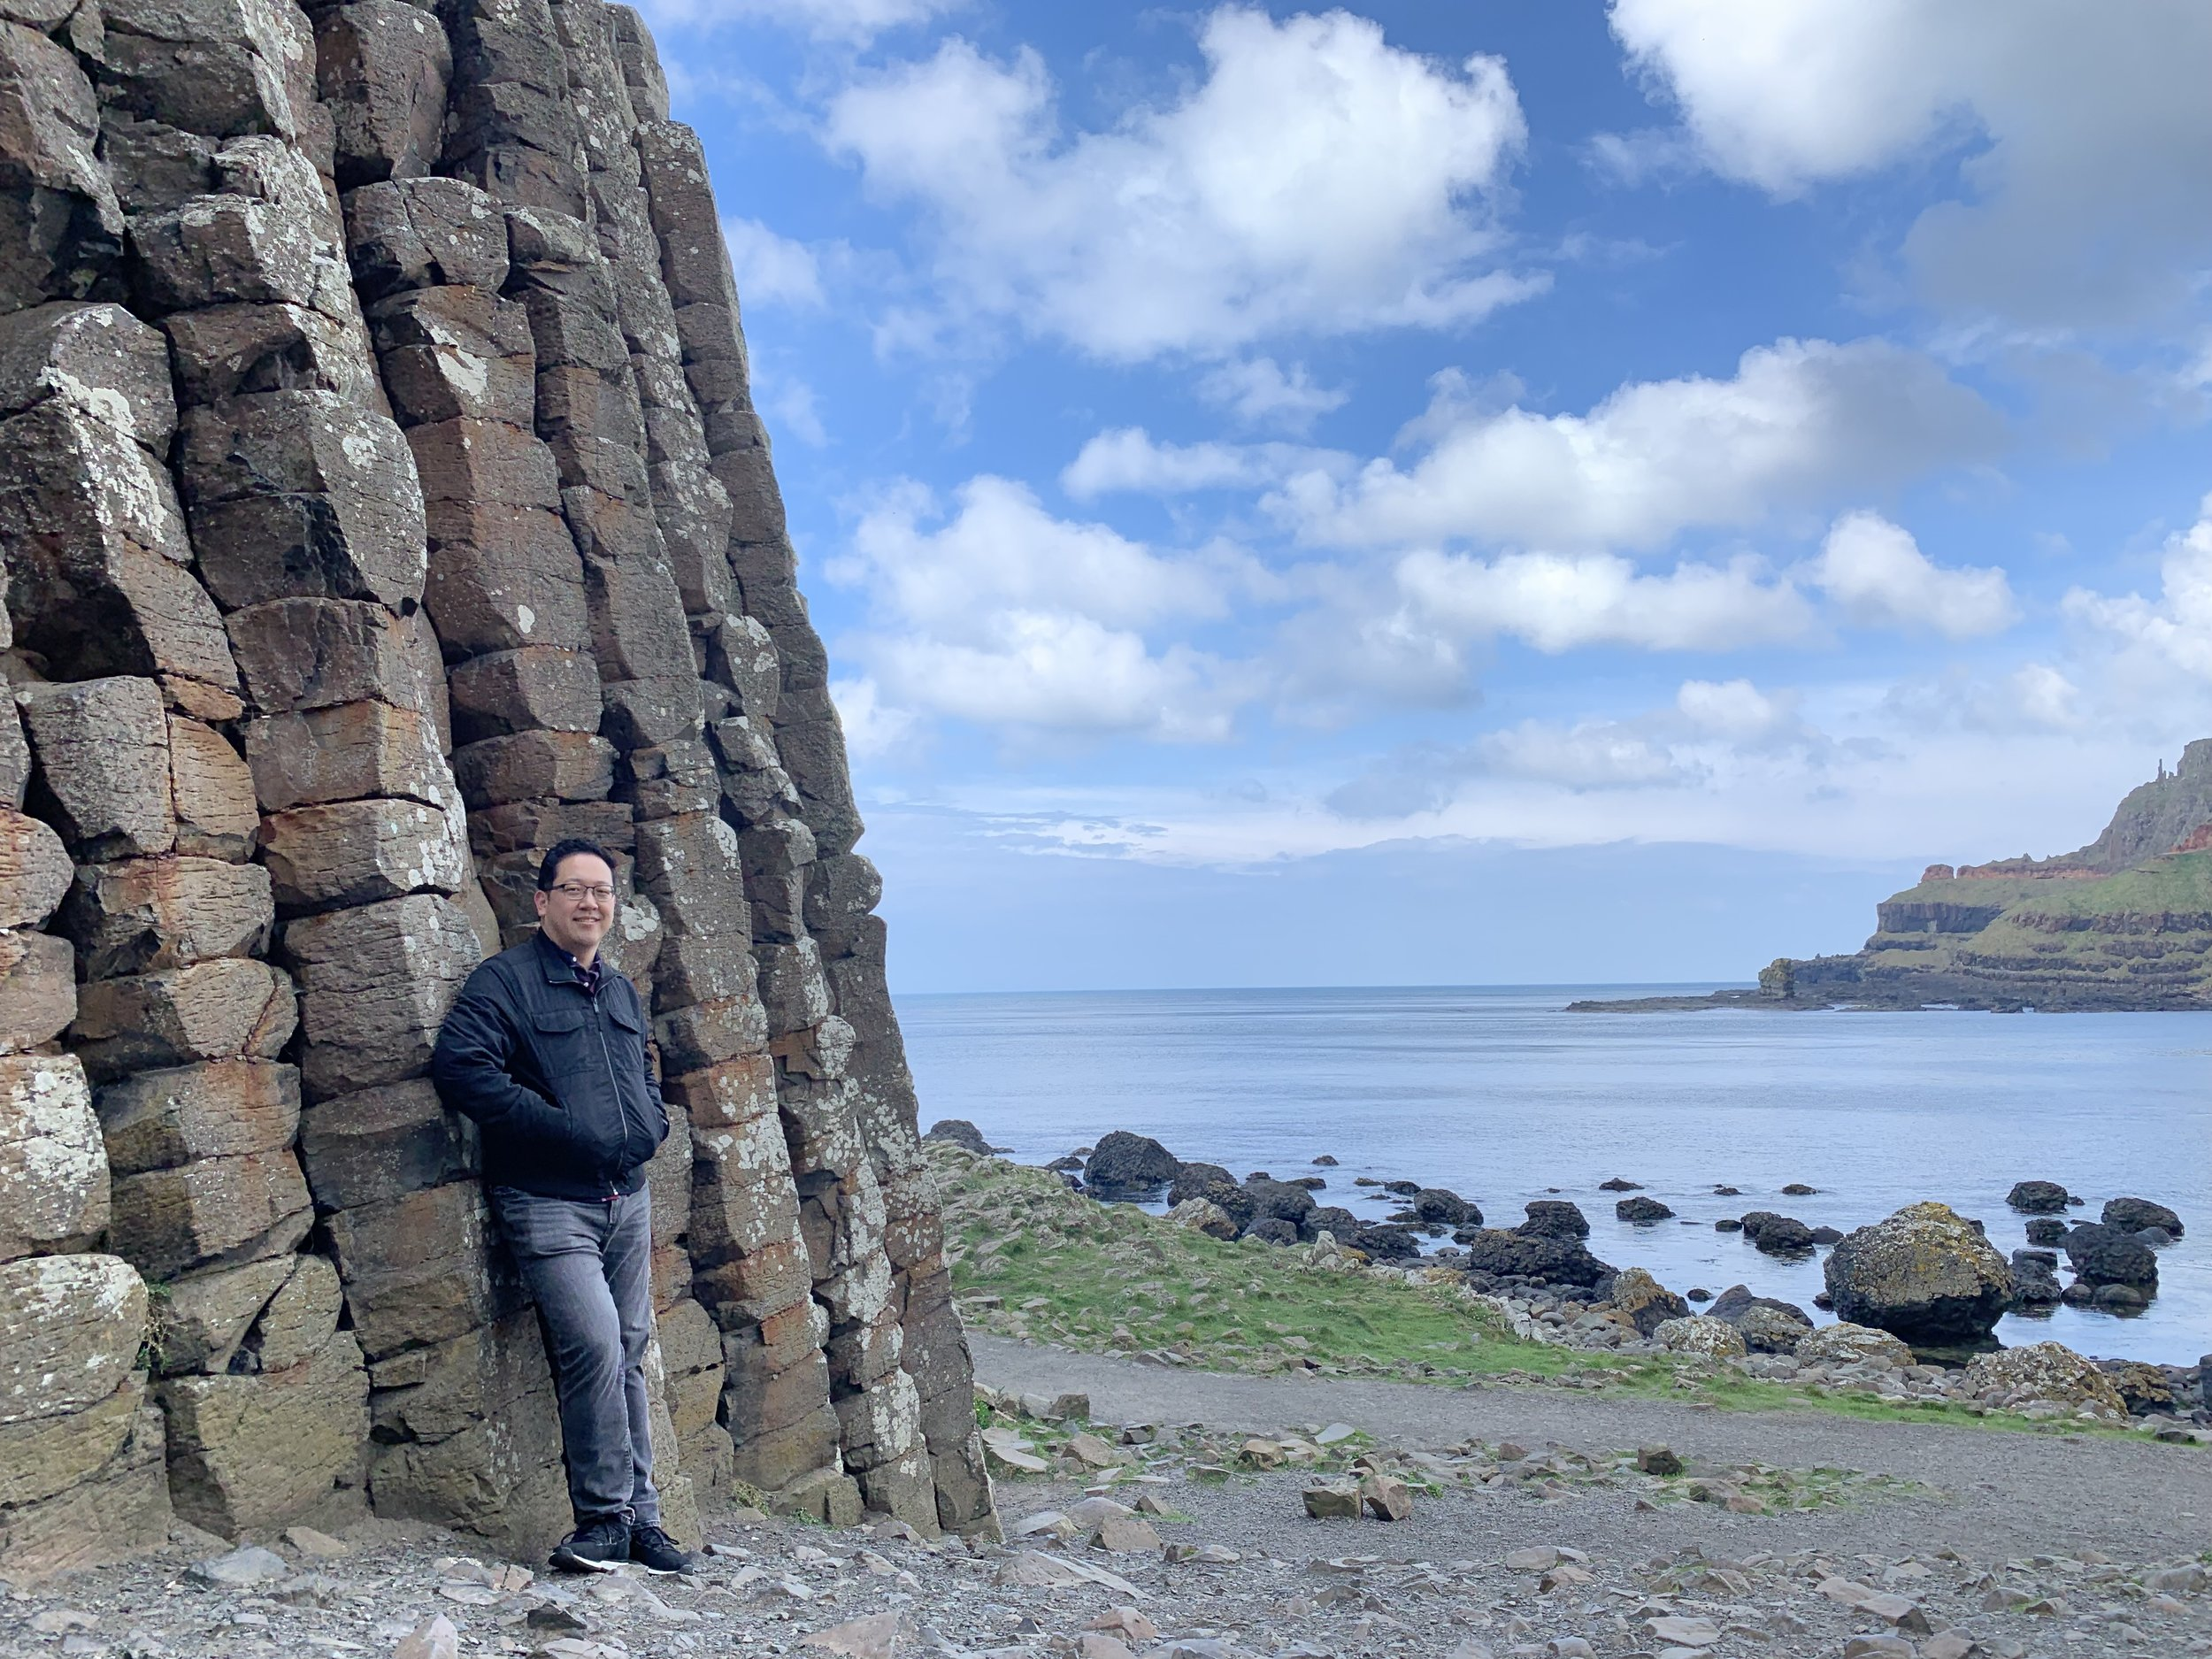 Me at Giant's Causeway, Northern Ireland. Not all the travel is for work. ;)